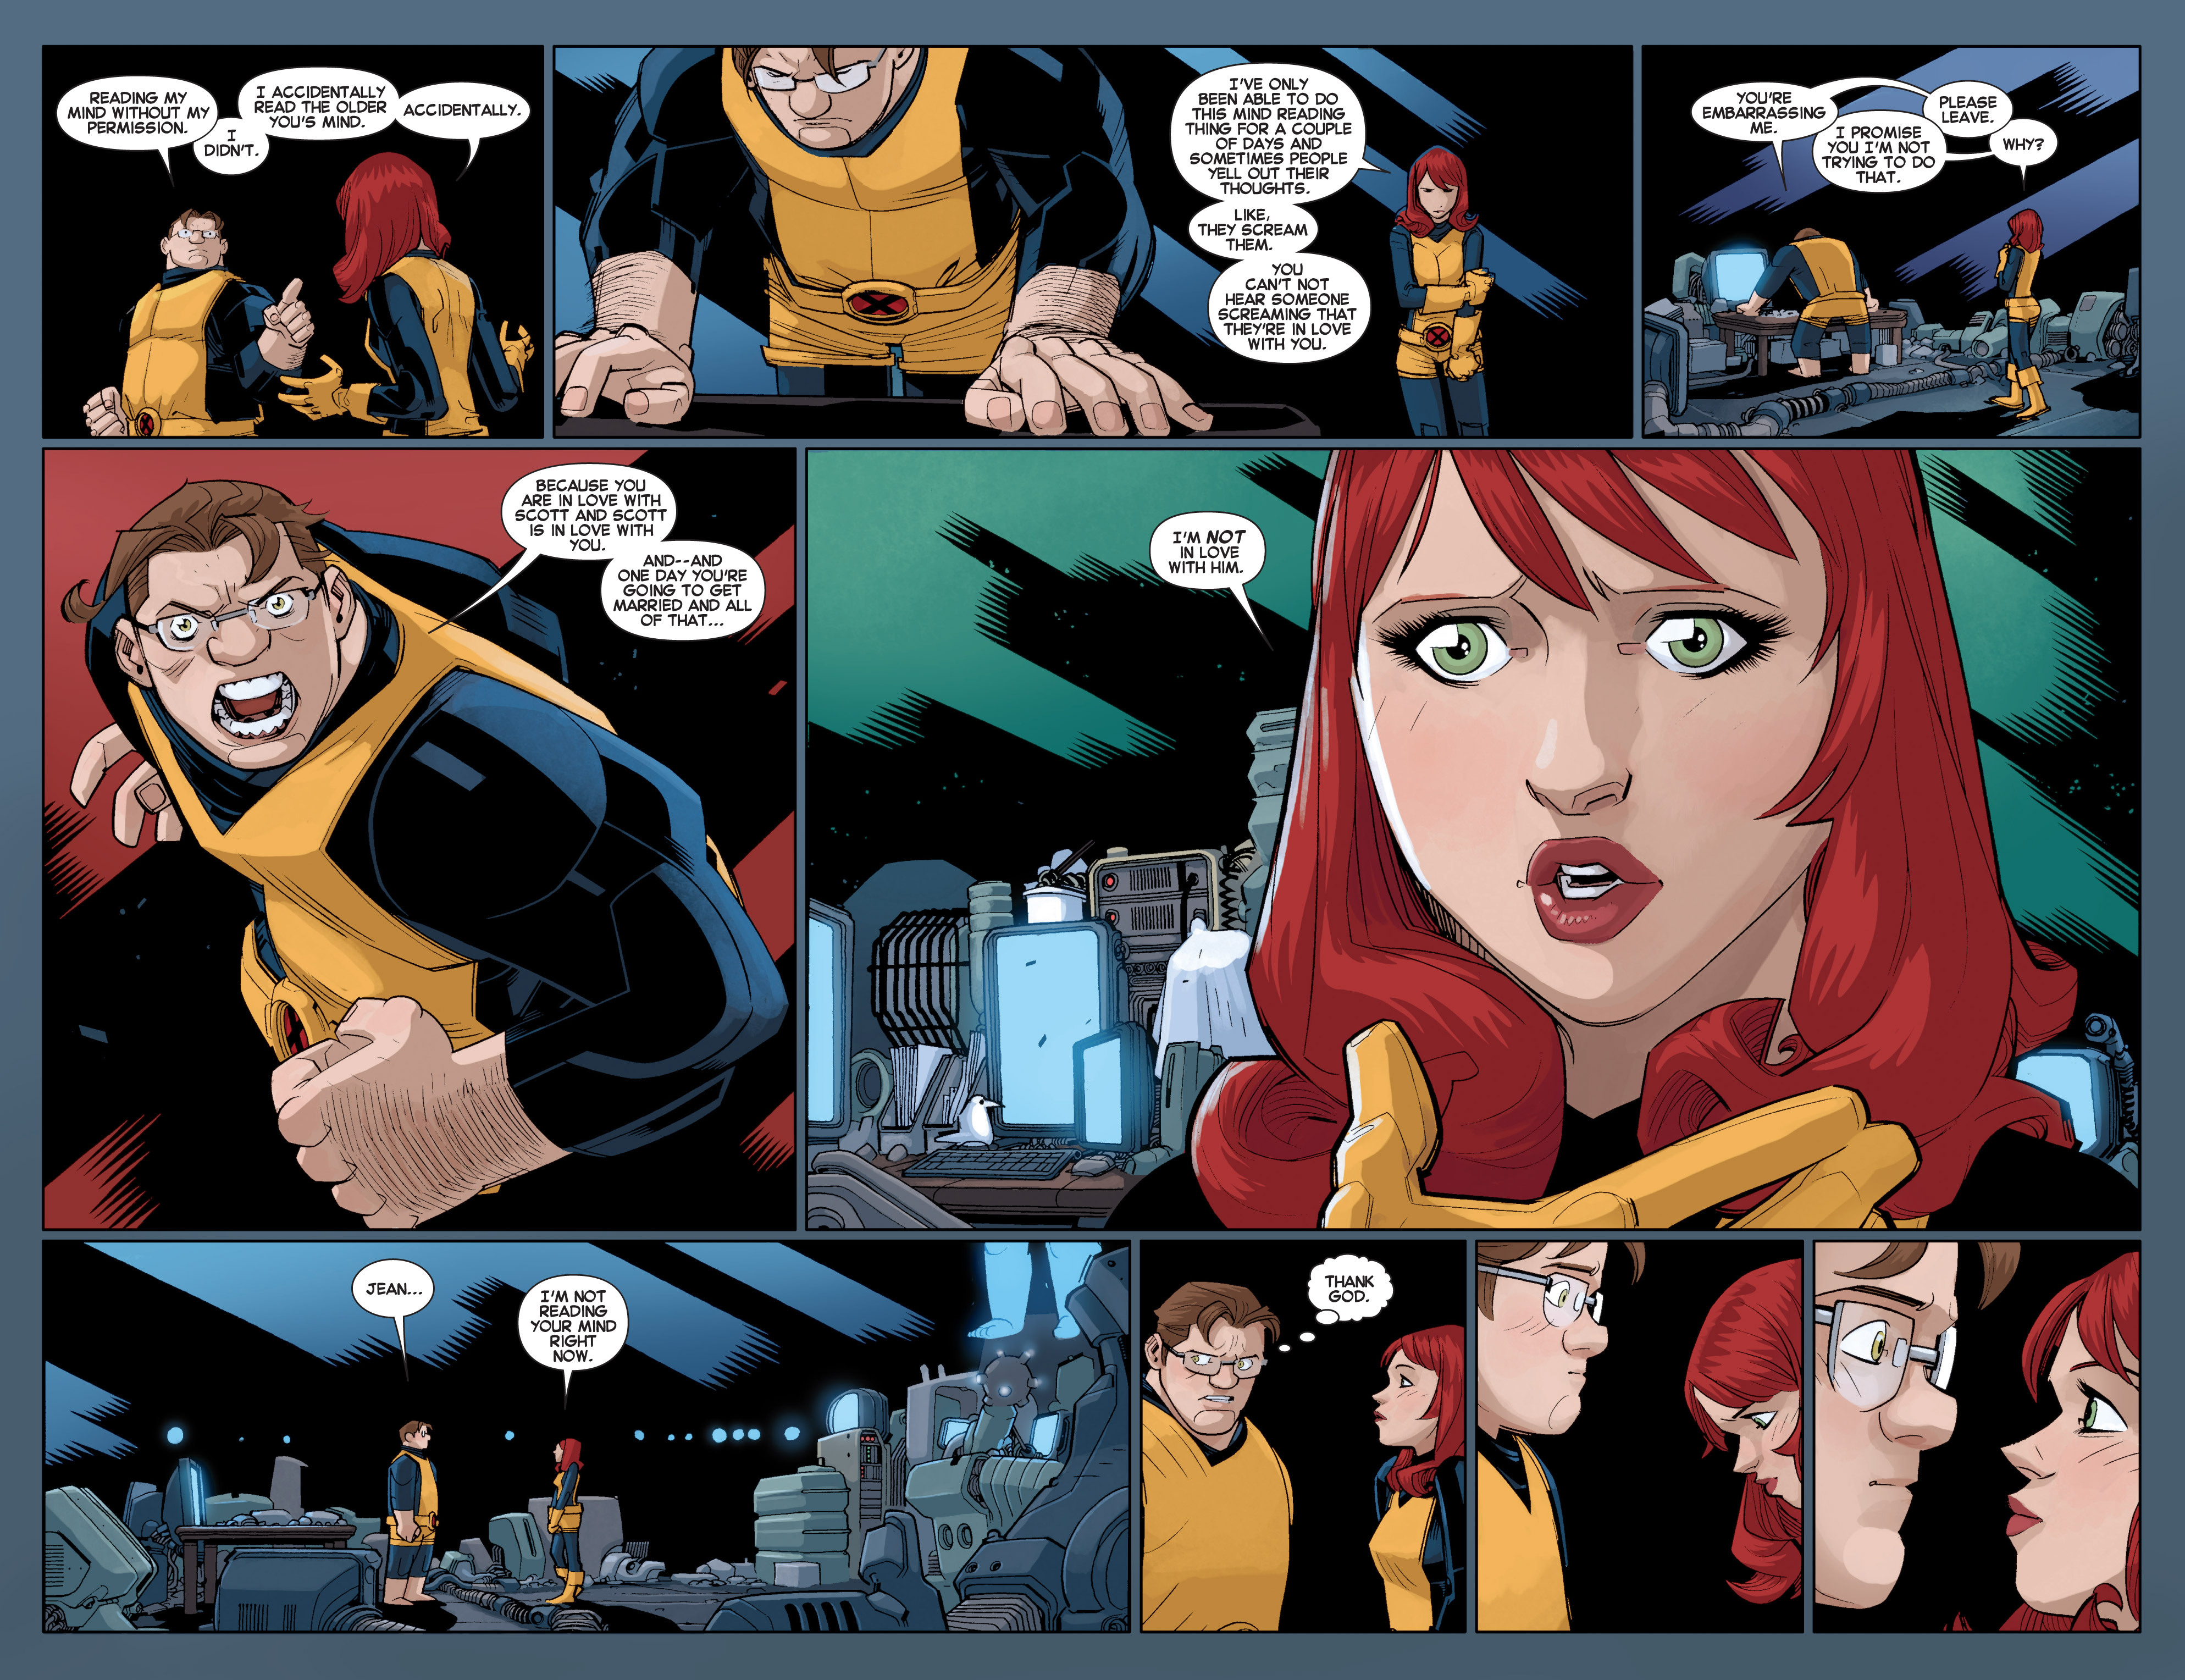 Read online All-New X-Men (2013) comic -  Issue # _Special - Out Of Their Depth - 103